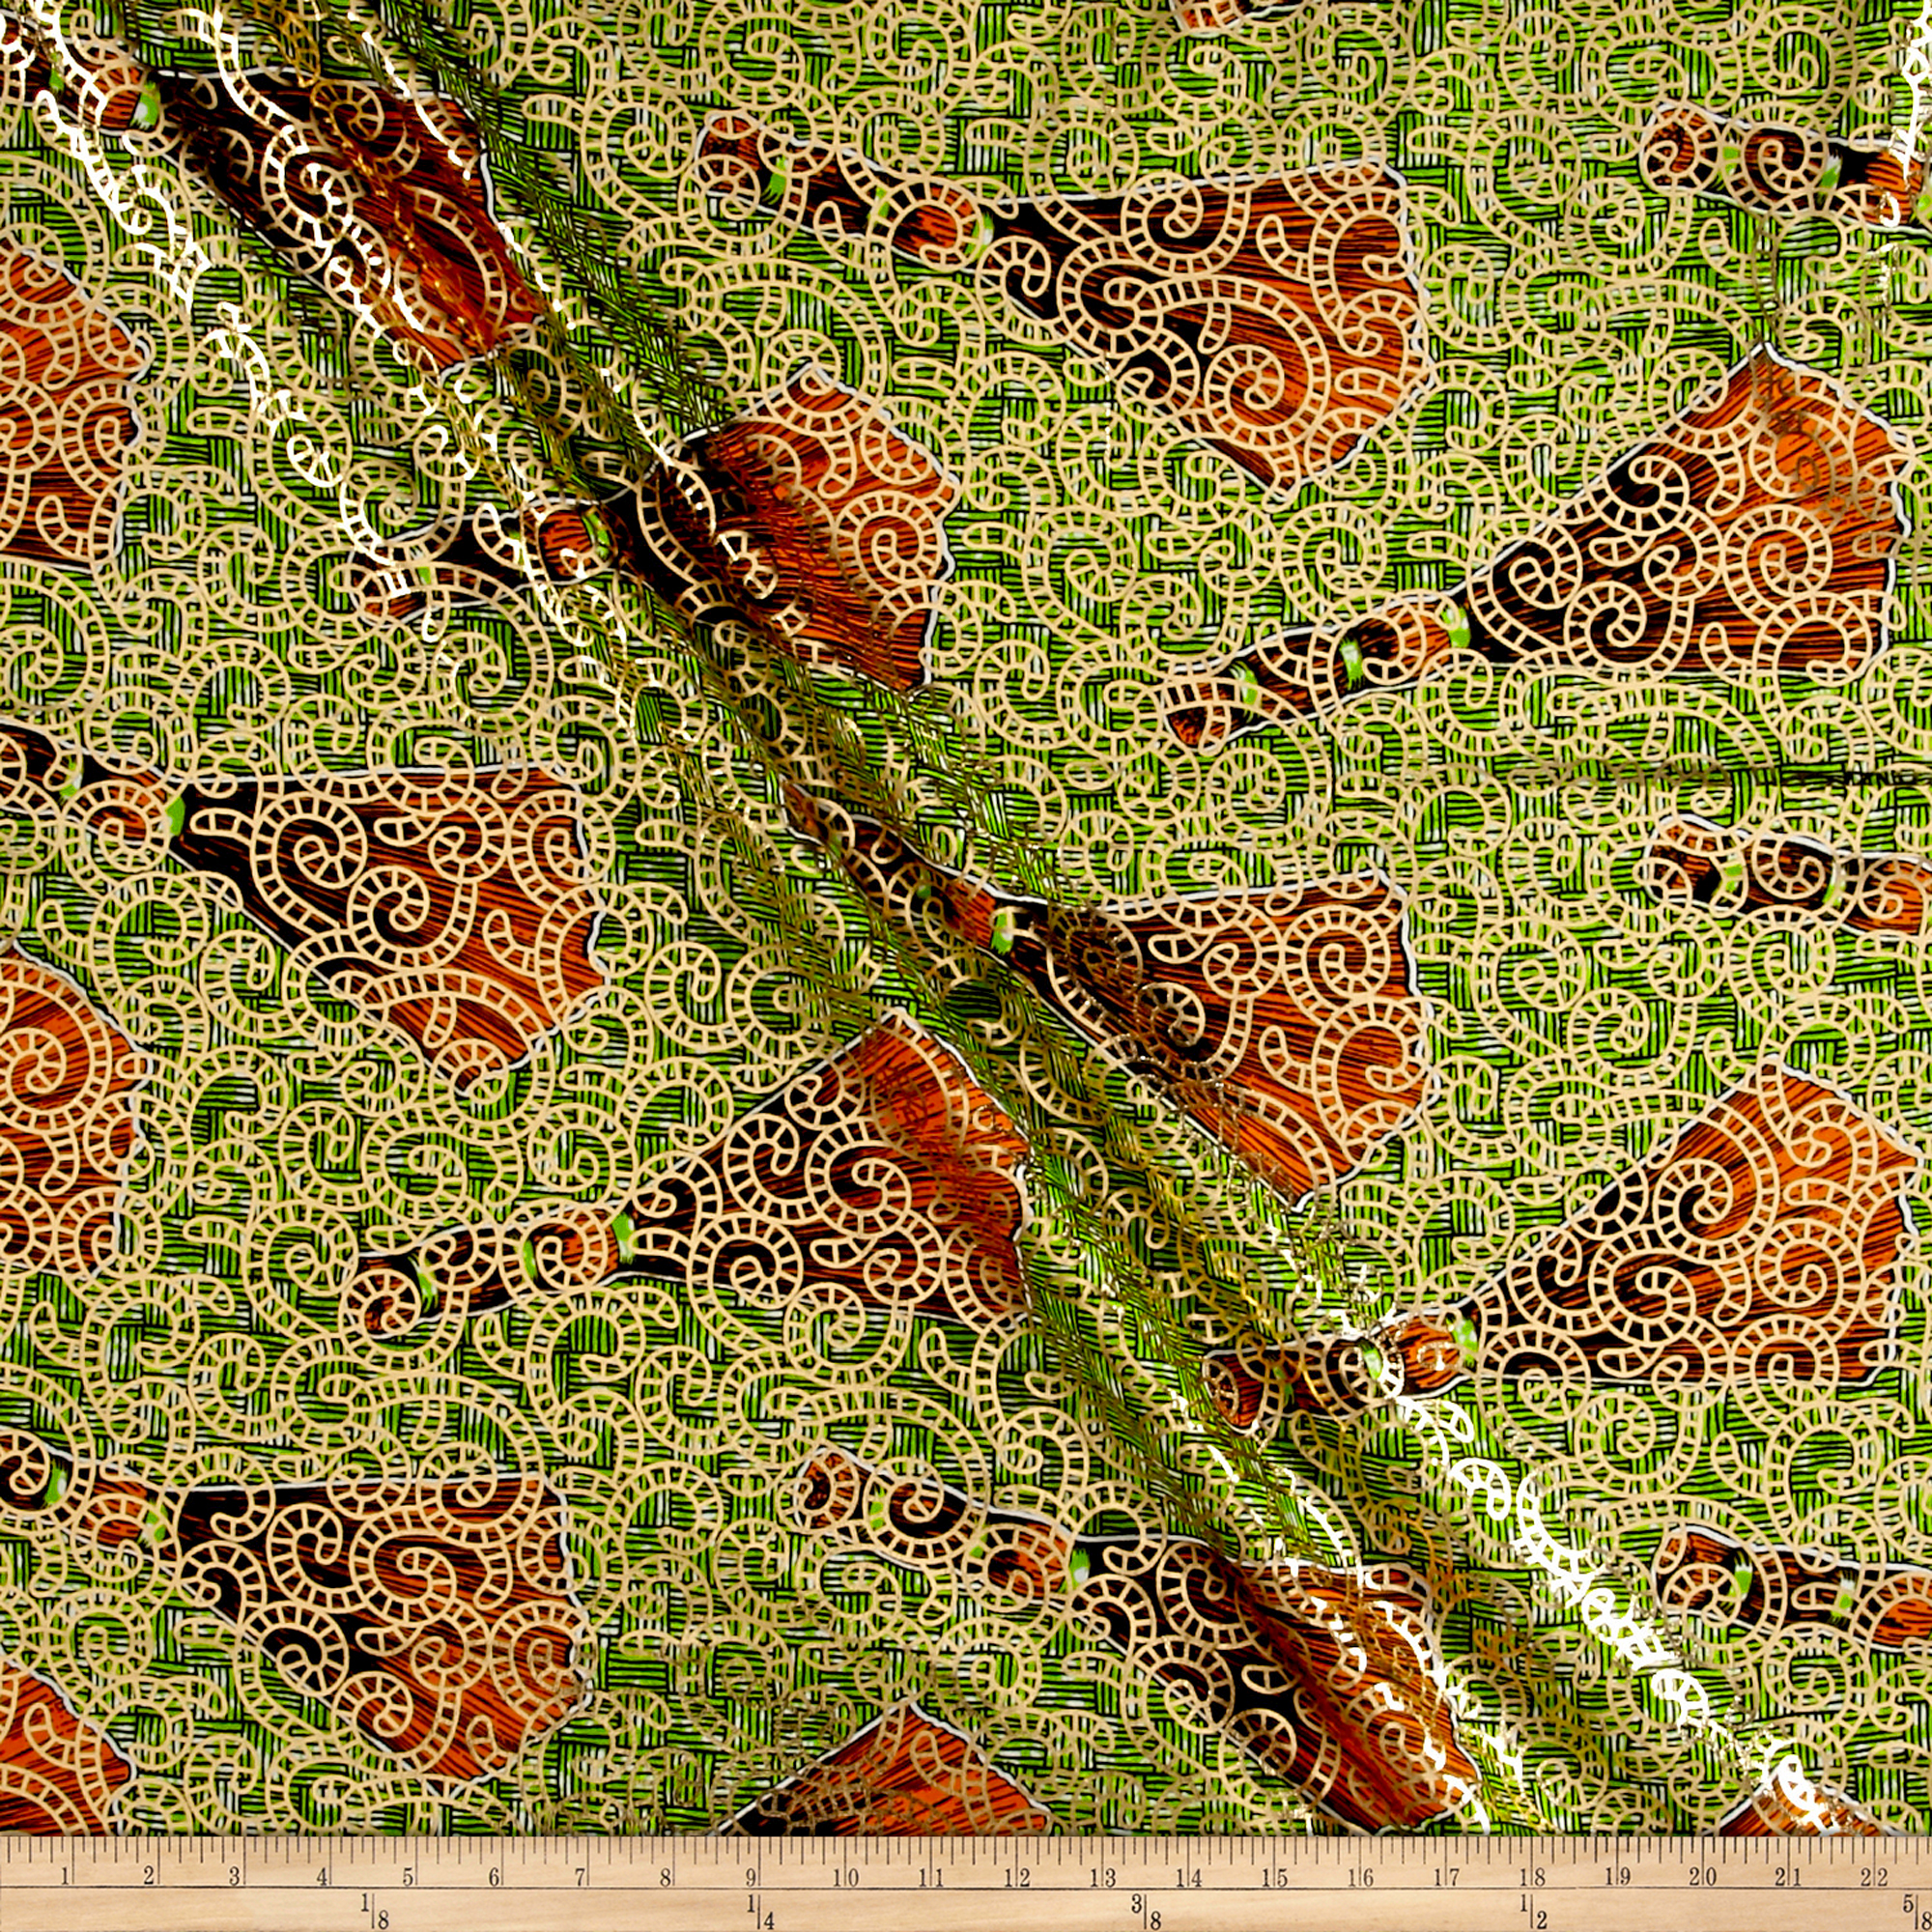 Supreme Osikani African Print Broadcloth 6 Yard Metallic Green/orange